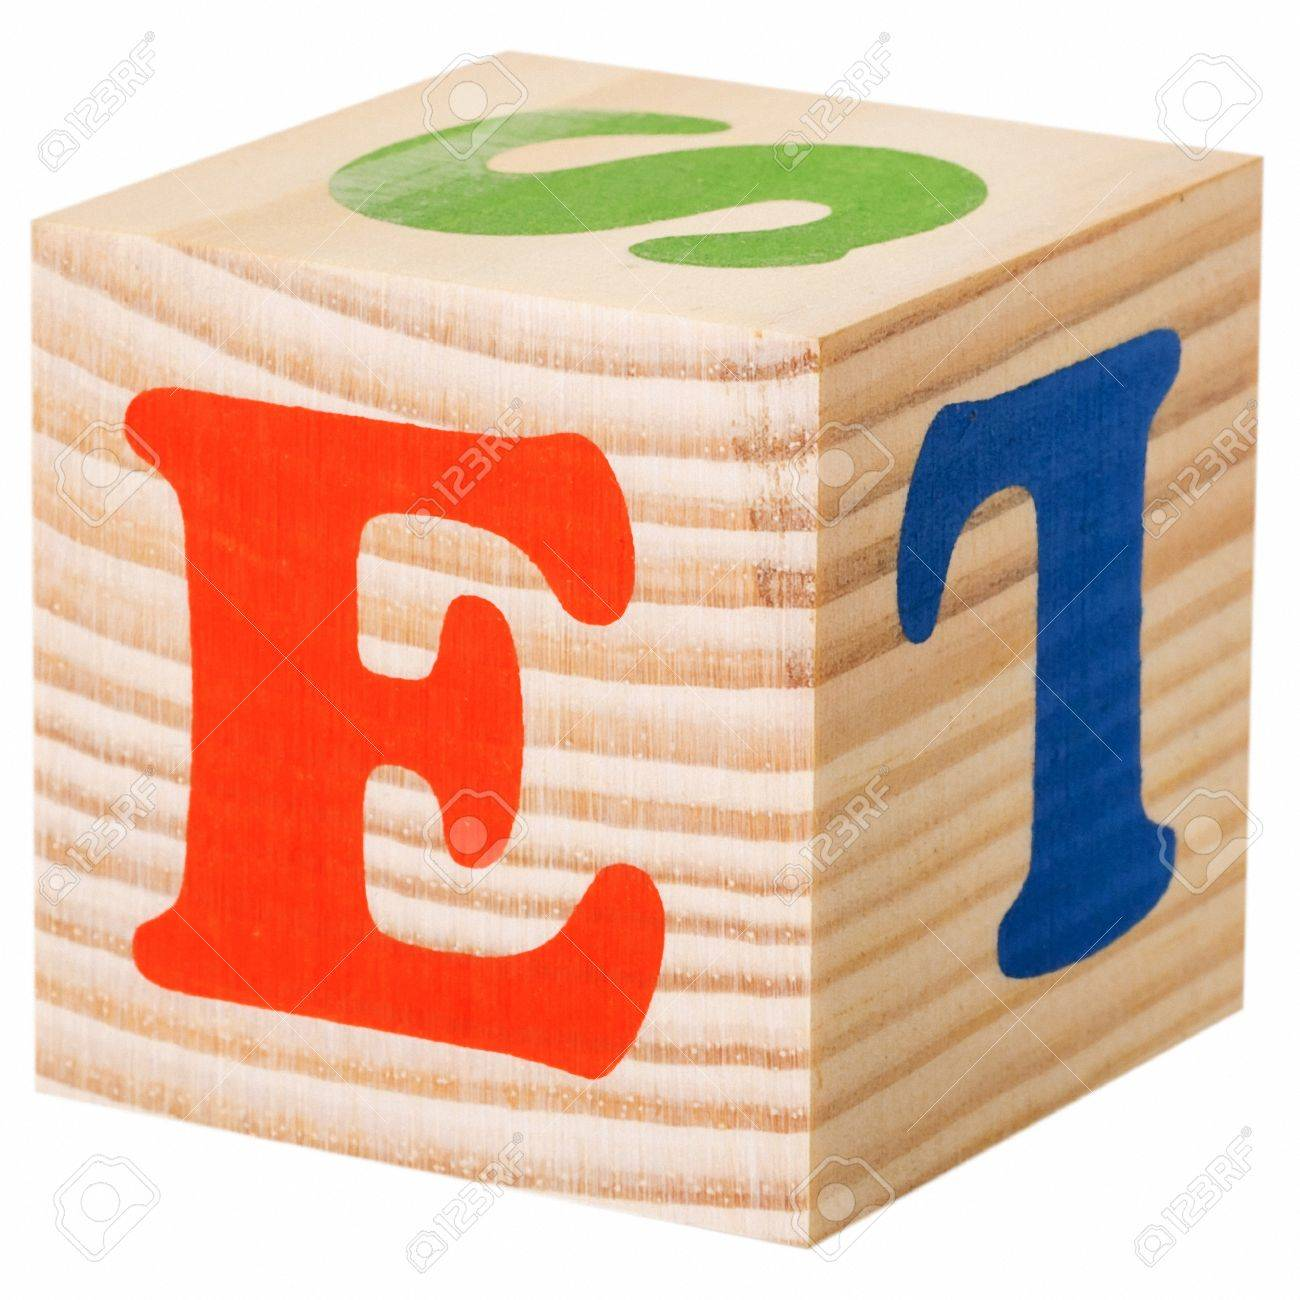 The Letter E Wooden Blocks With Letters Of The English Alphabet